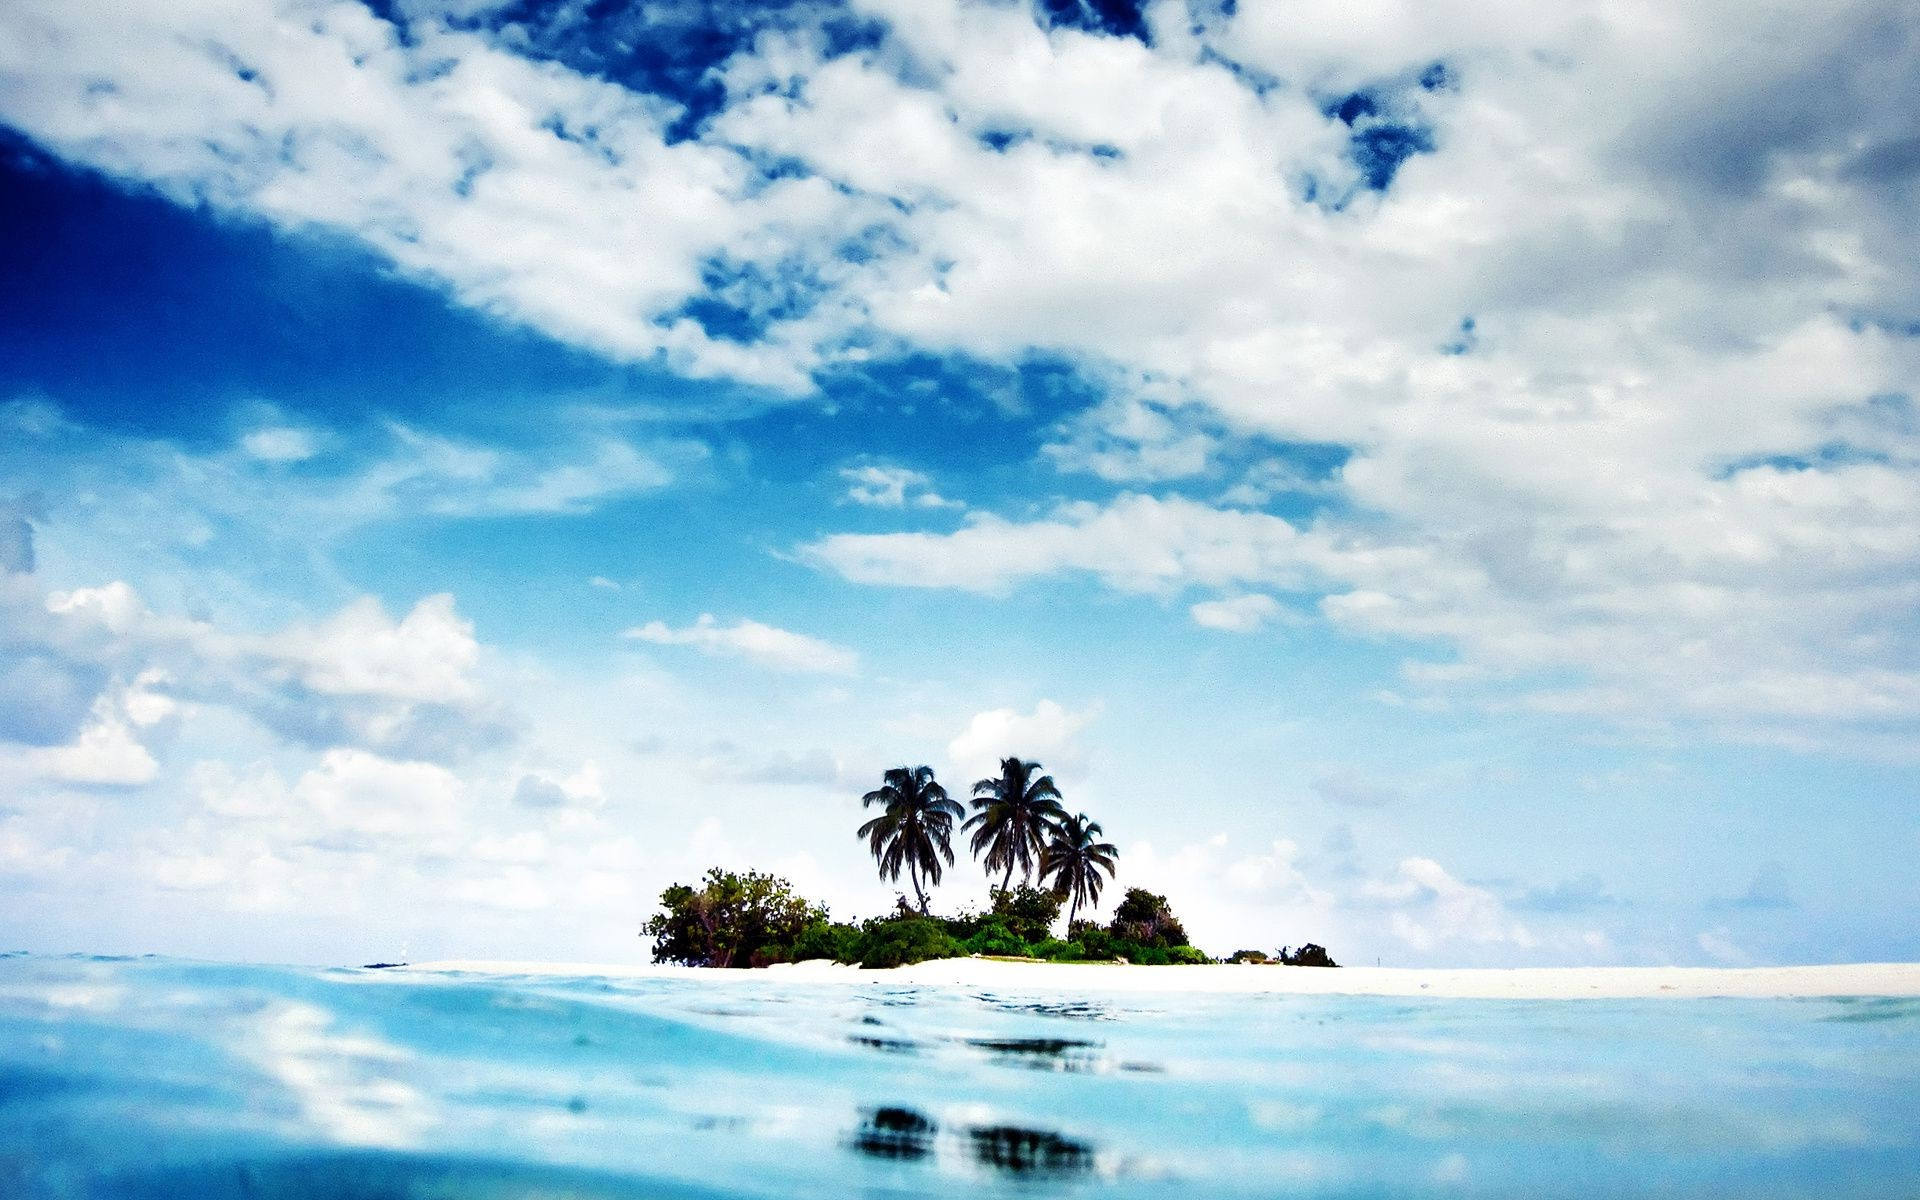 island ocean Nature palm trees water landscape sky